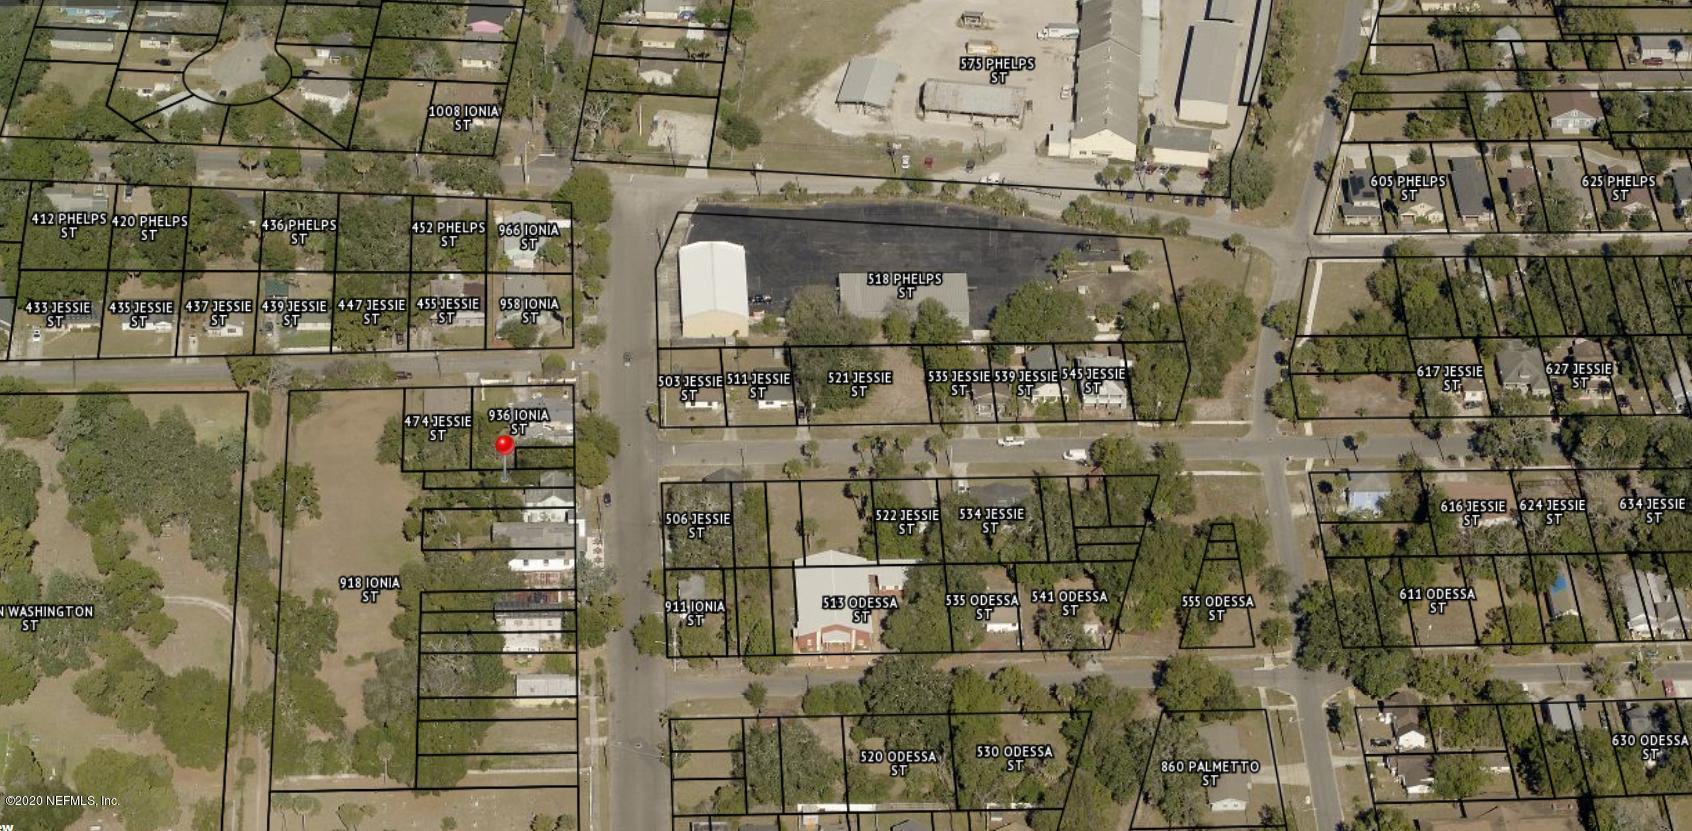 0 IONIA, JACKSONVILLE, FLORIDA 32206, ,Vacant land,For sale,IONIA,1082736